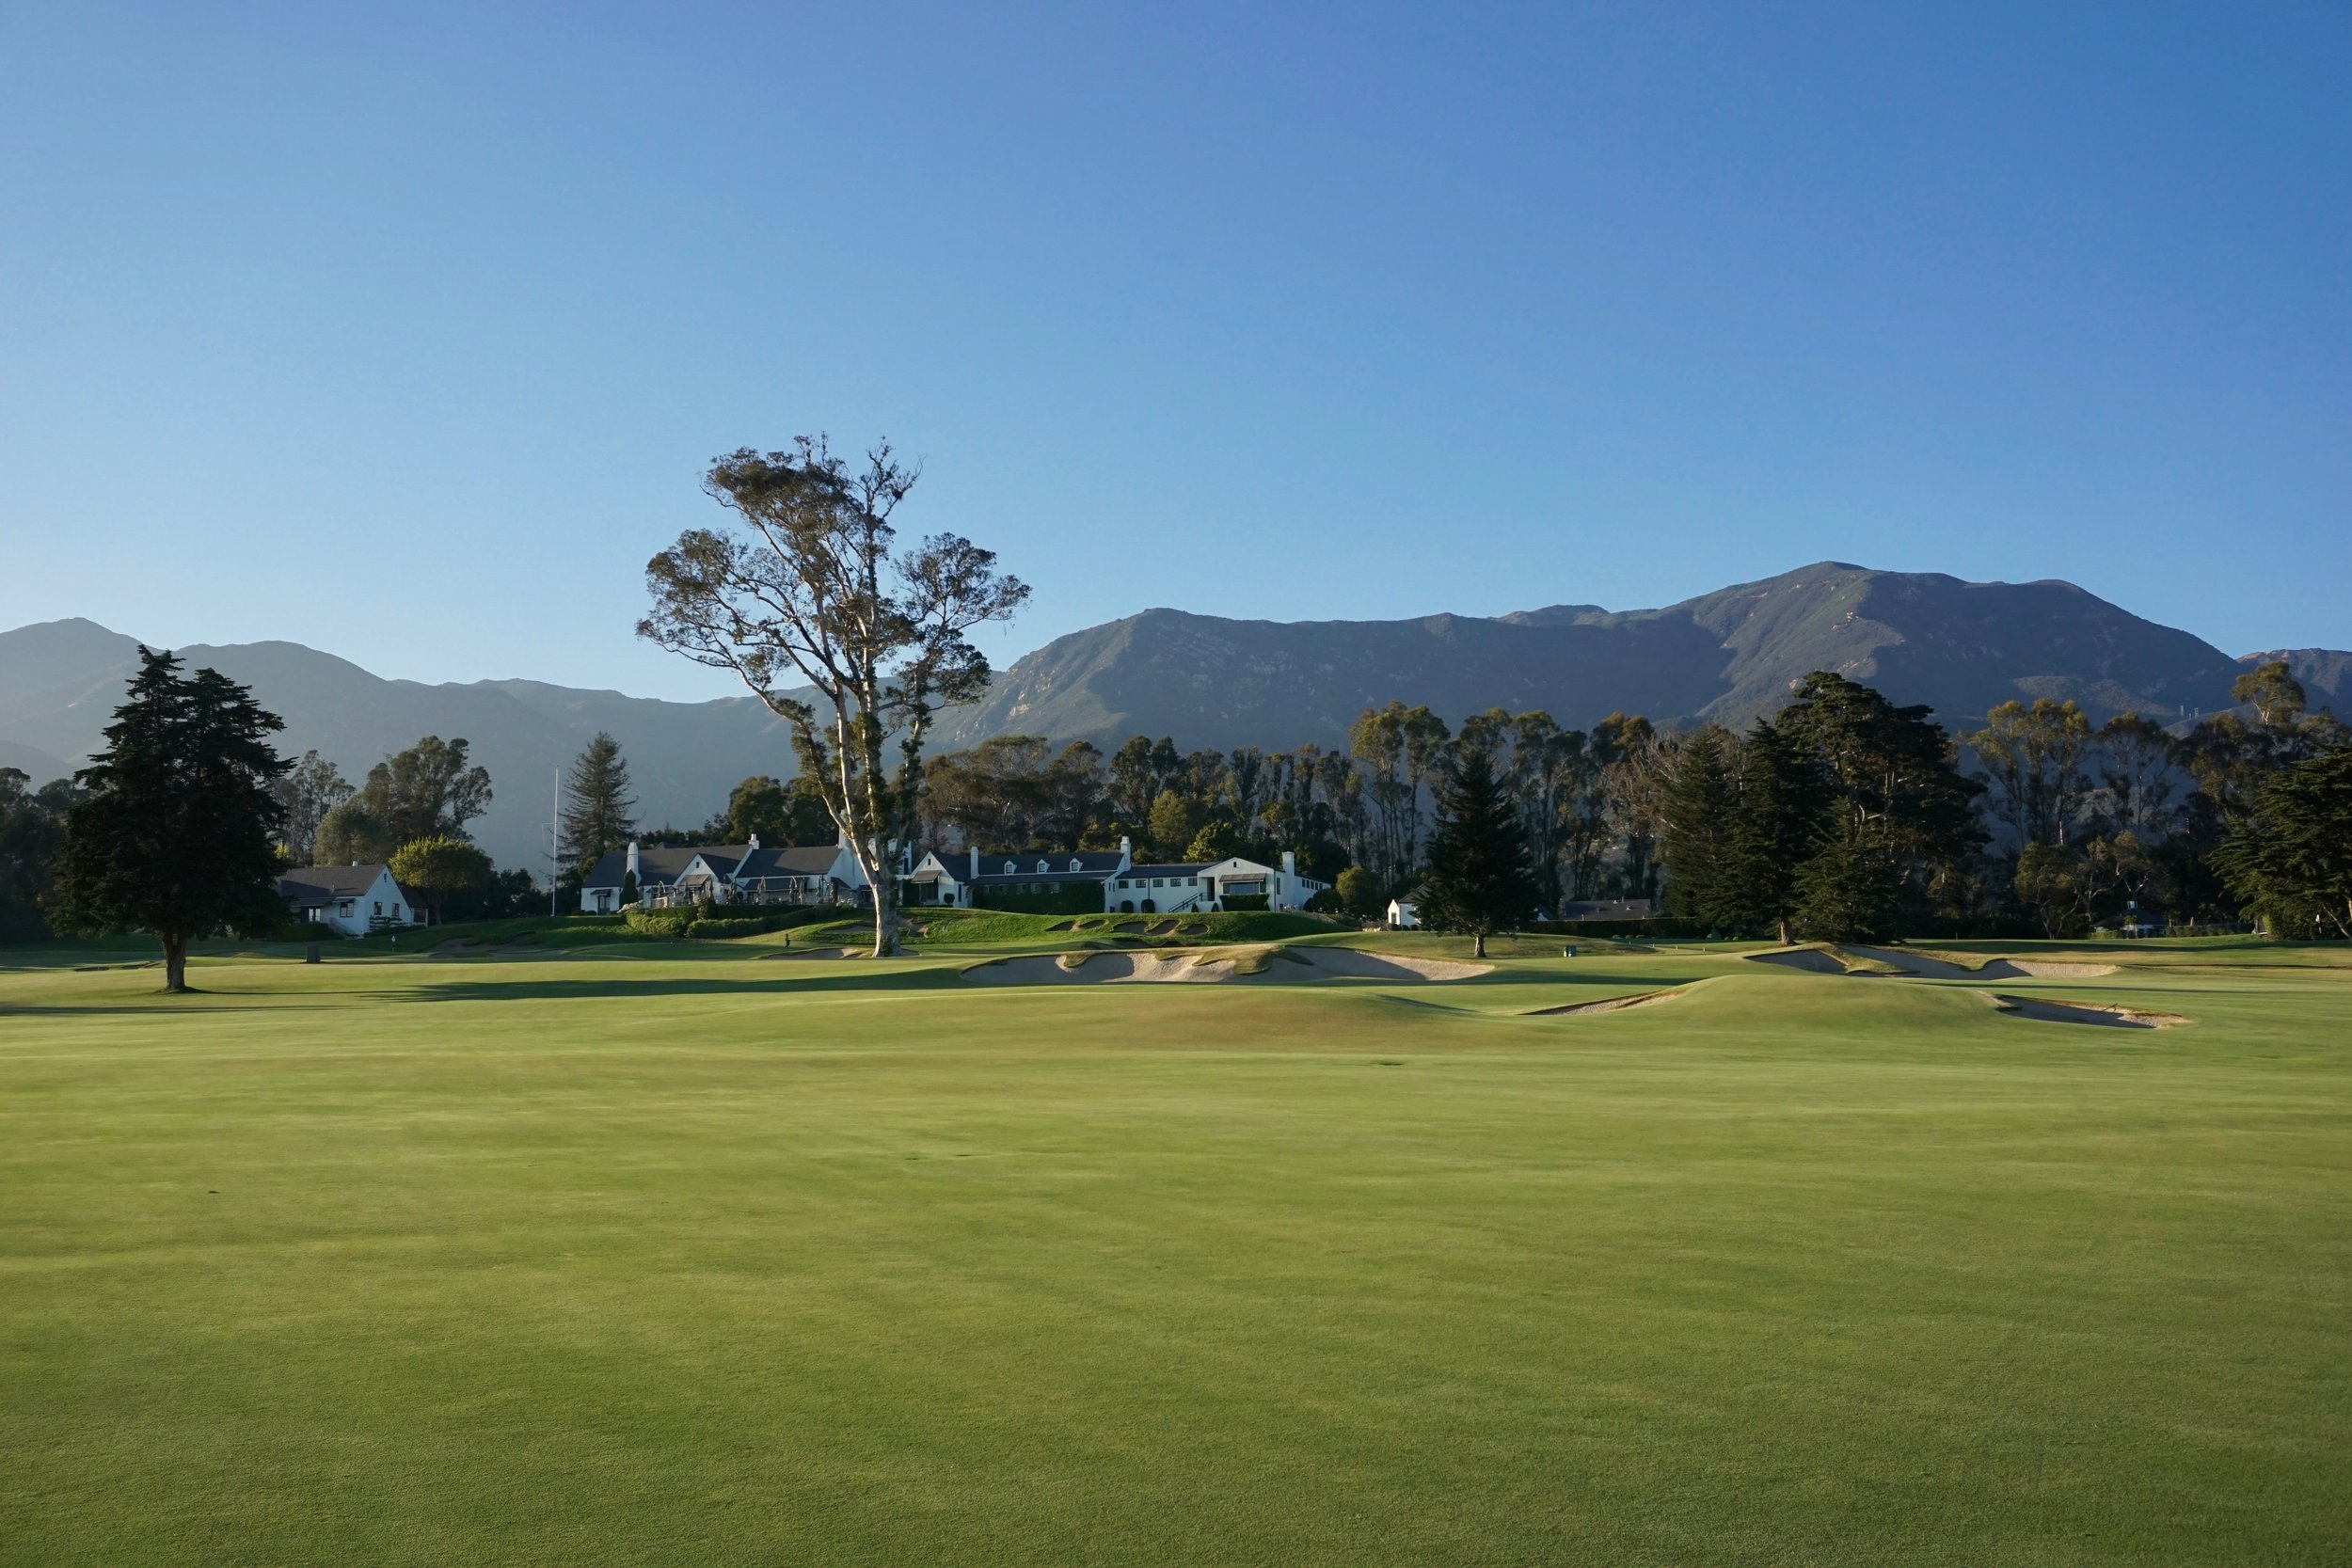 The turf at the Valley Club is pure, firm, and fast.  It is also environmentally friendly requiring much less water and nutrient input than comparable courses.